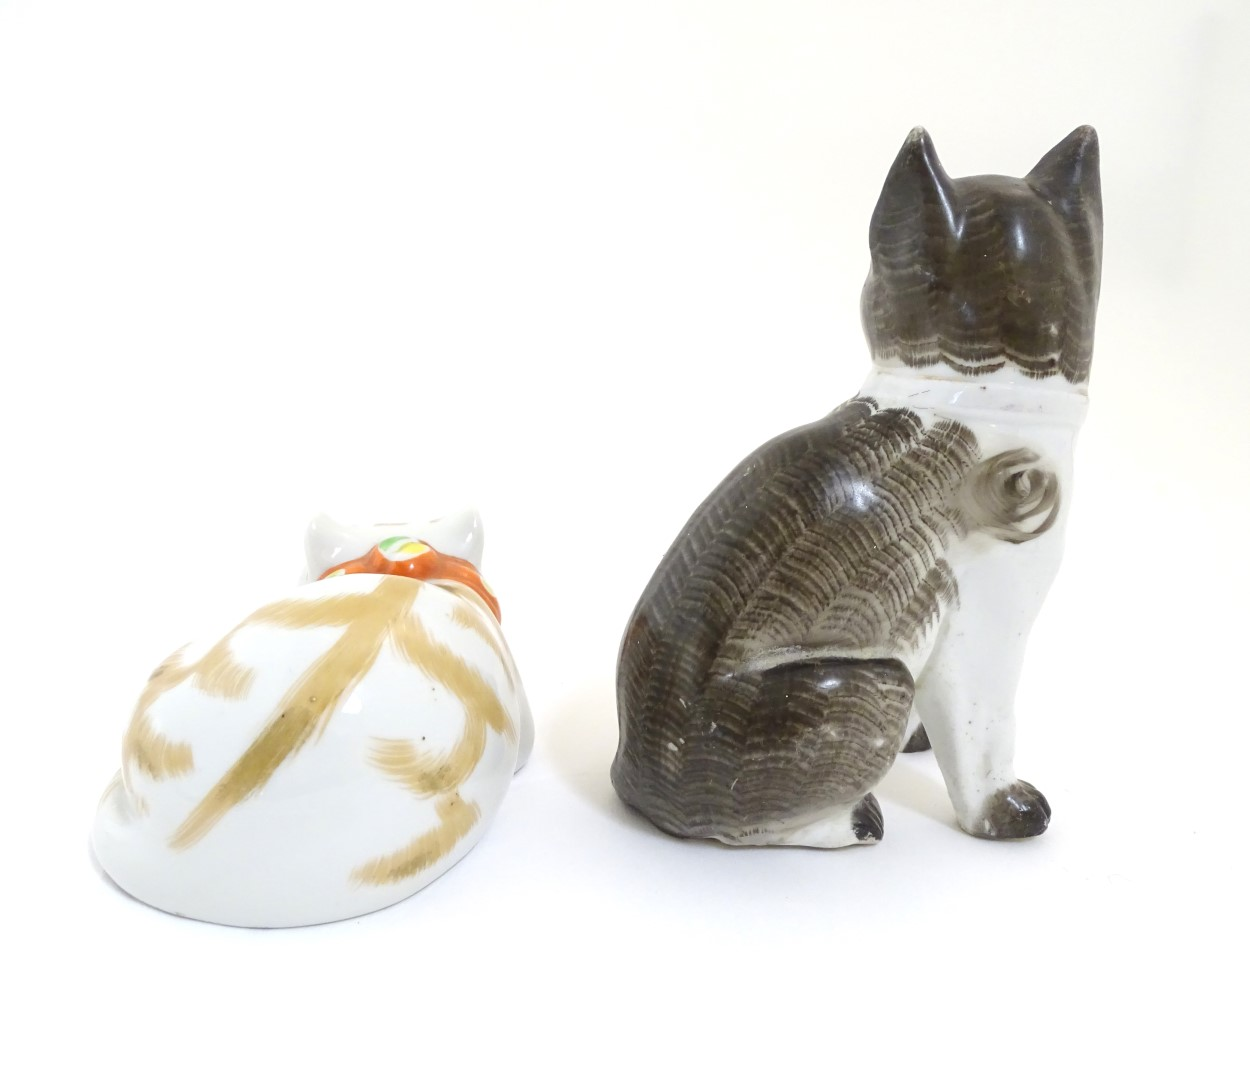 Lot 80 - Two ceramic models of cats, one seated, one recumbent. Height of the seated model: approx.